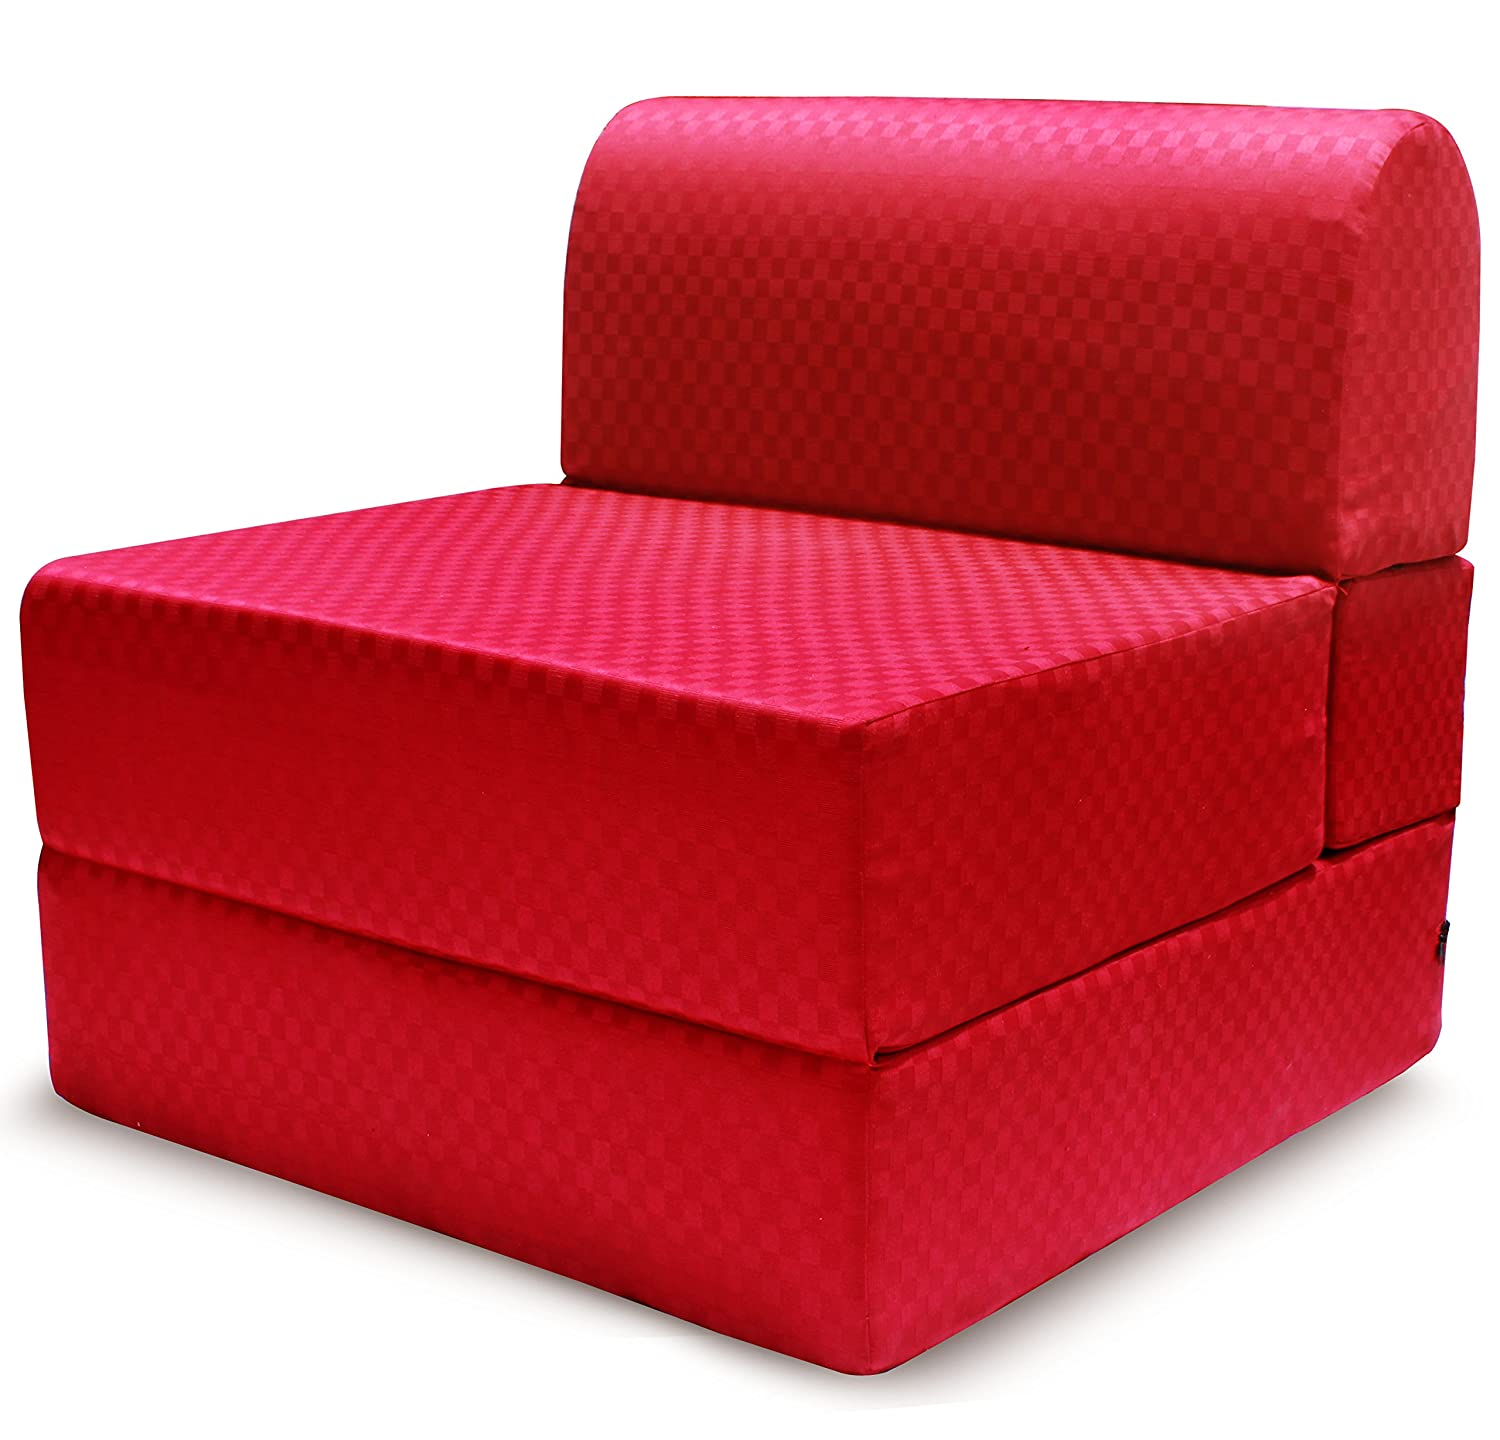 Sofas Buy Sofas& Couches line at Best Prices in India Amazon